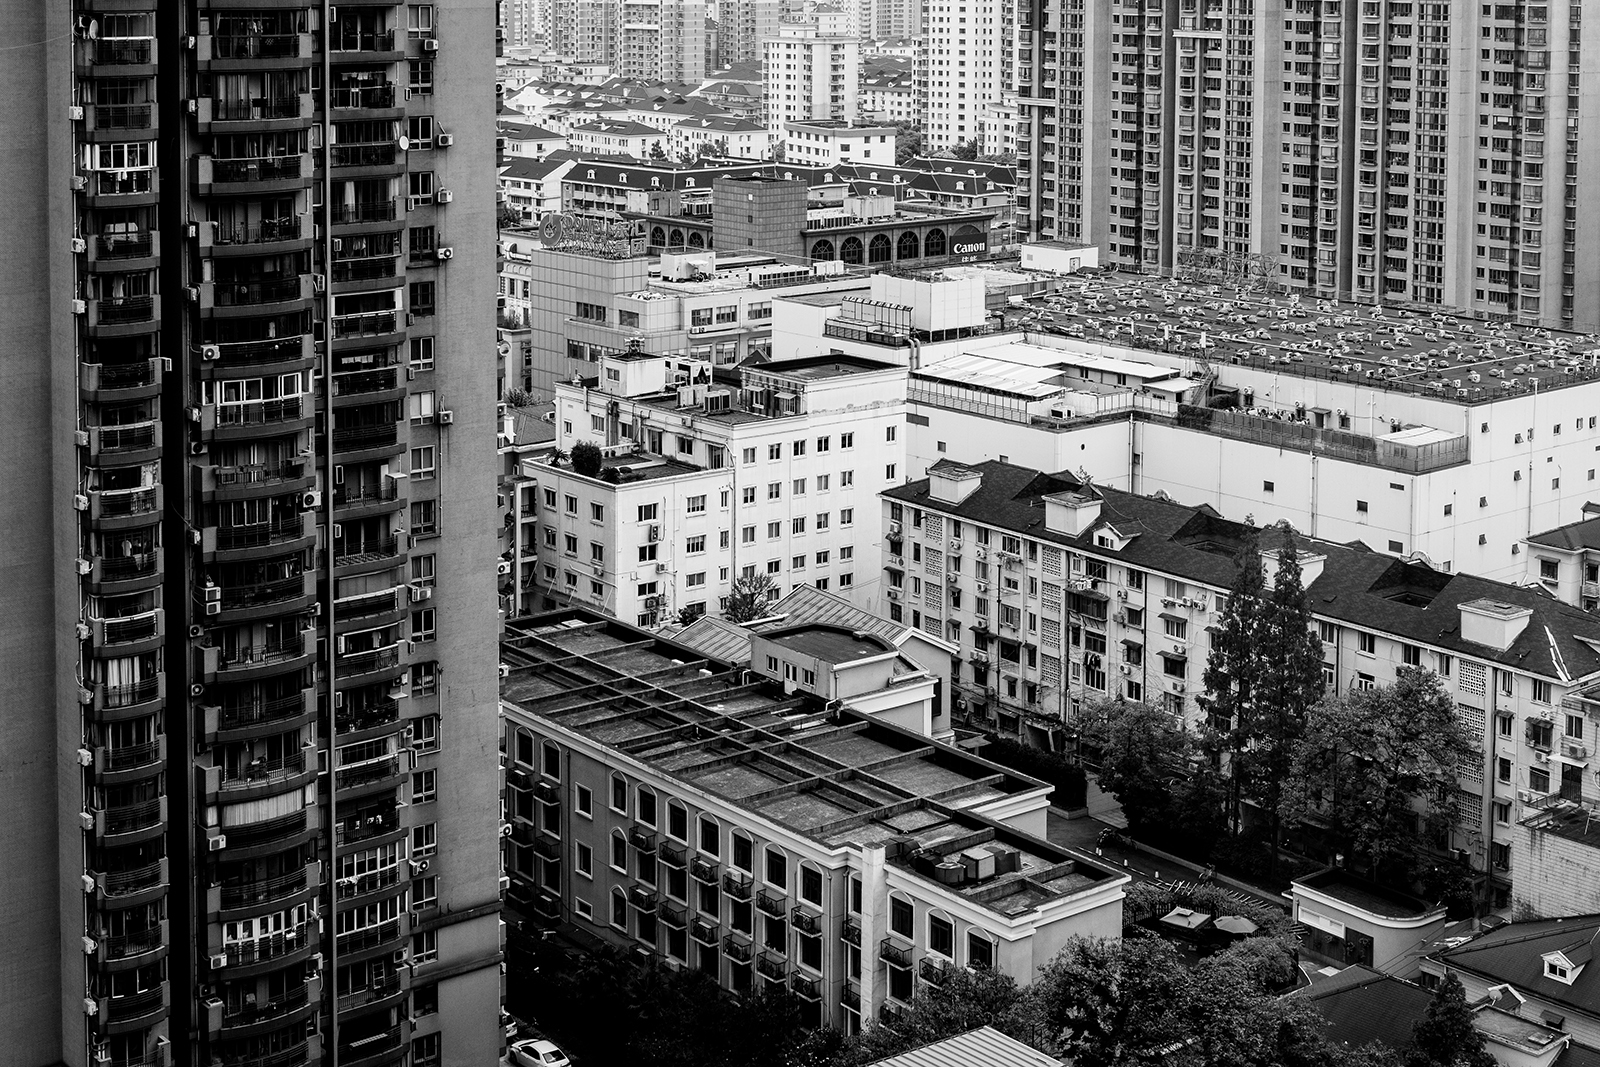 view of buildings from Shanghai